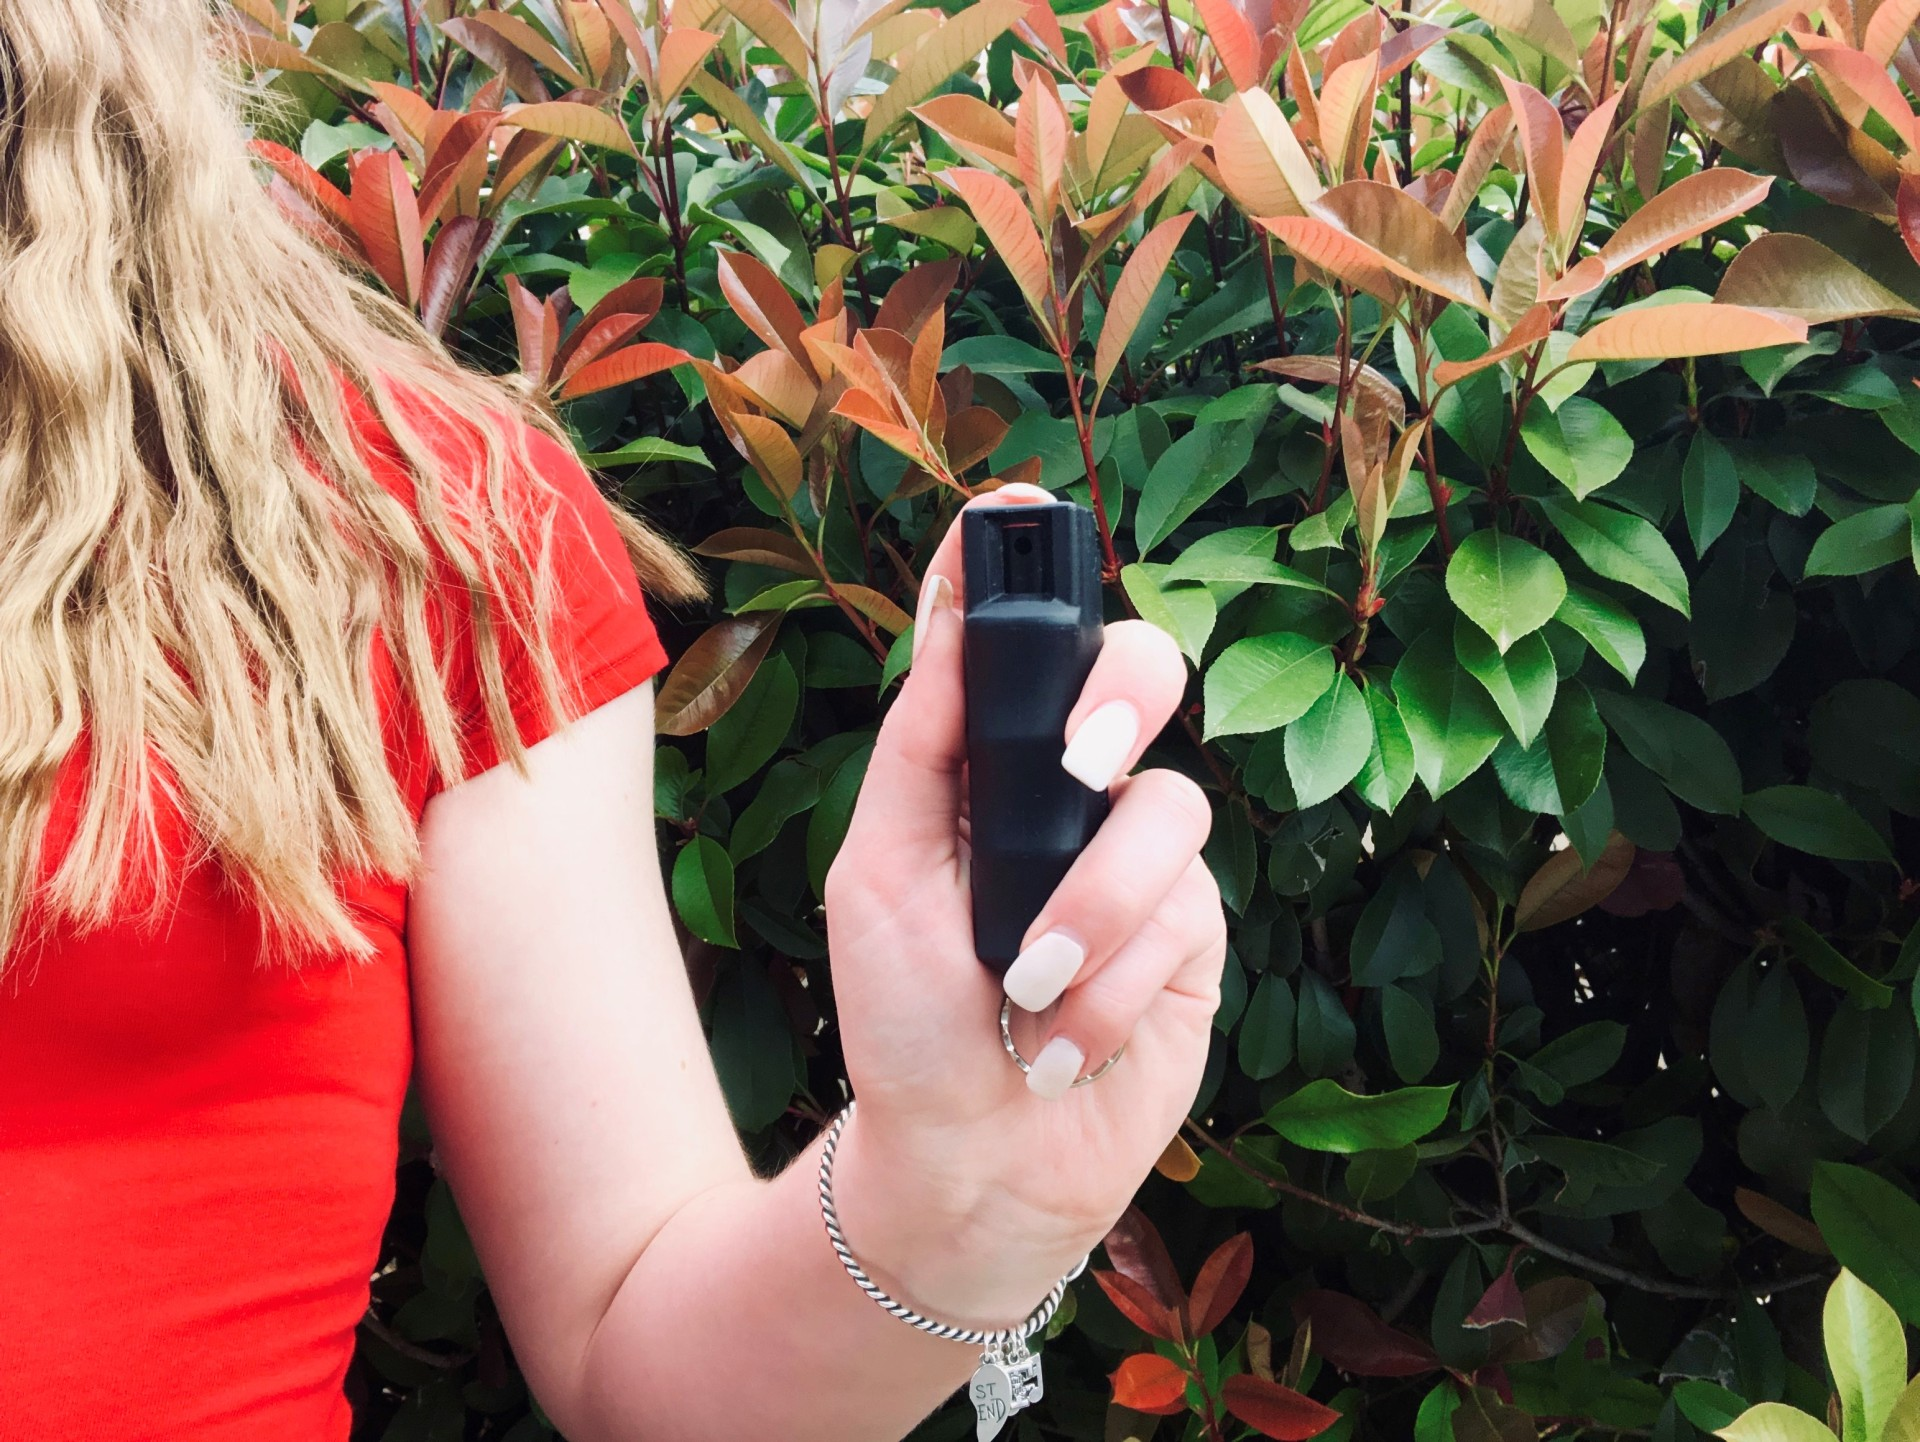 Girl in red holding pepper spray in front of a hedge.